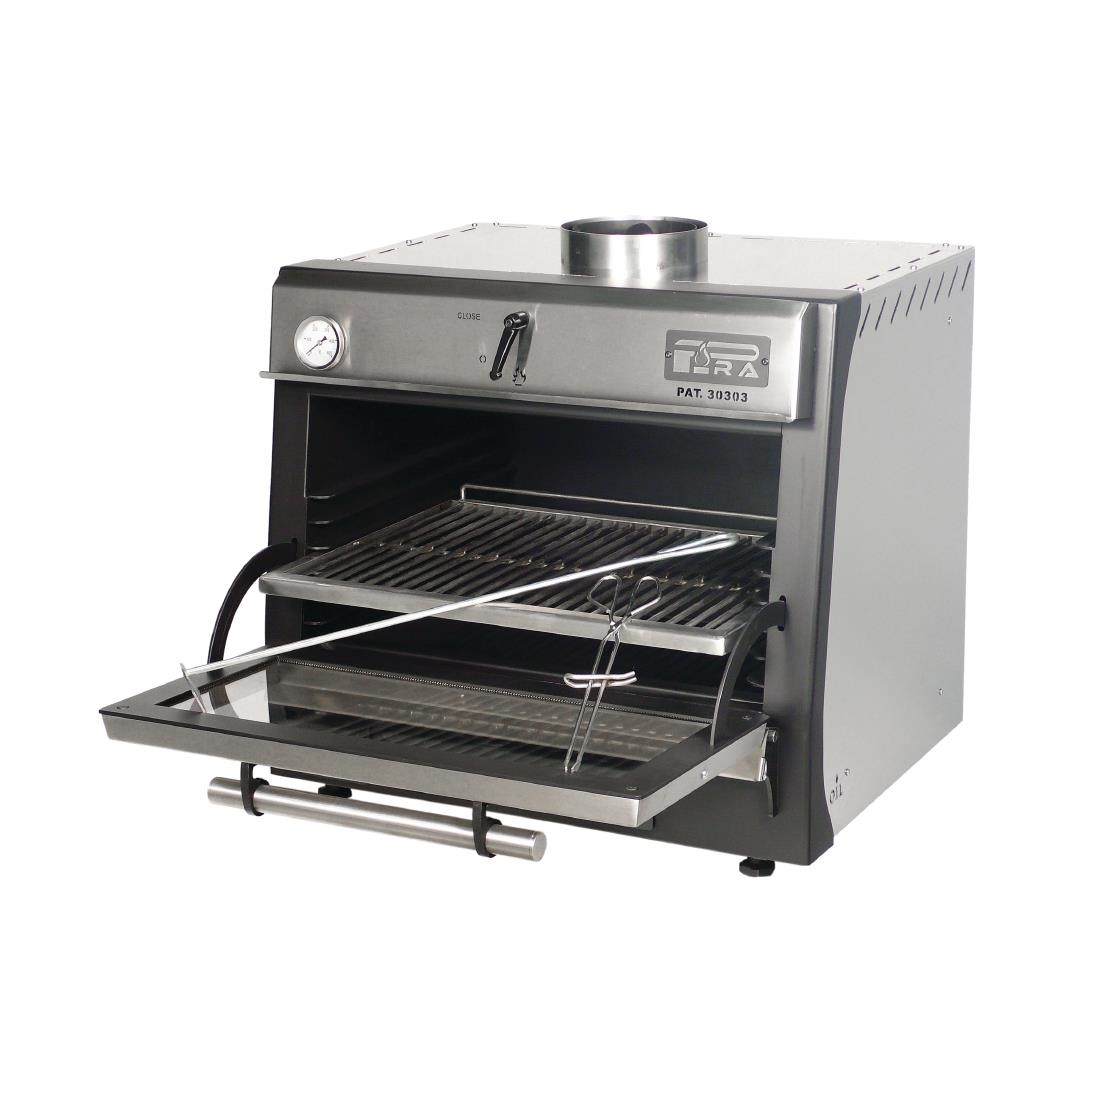 Pira 70 LUX Charcoal Oven Stainless Steel